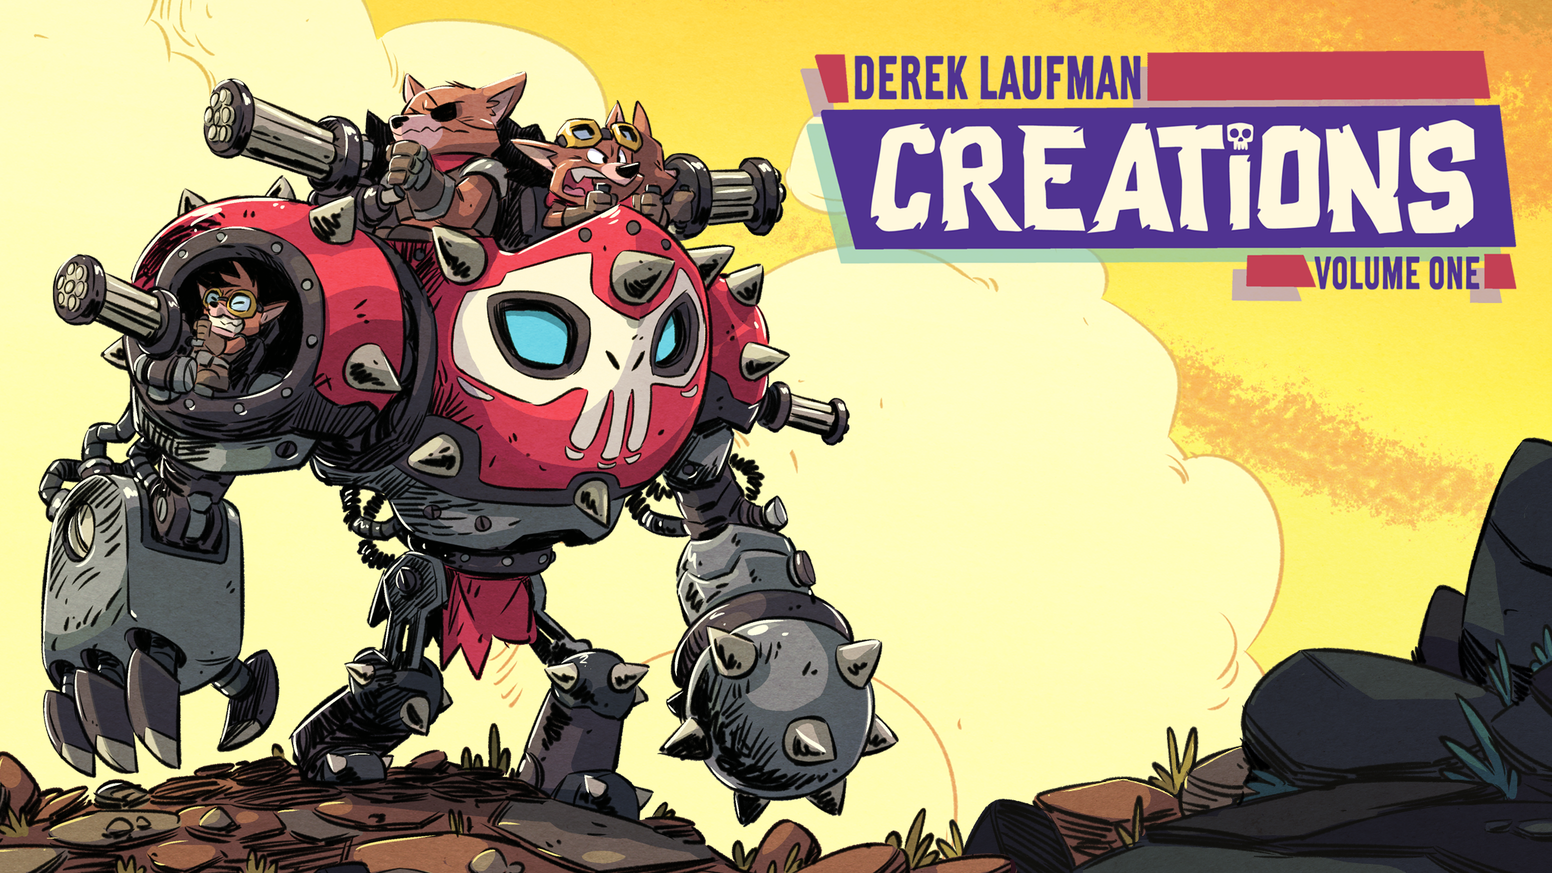 Creations is an Artbook by Derek Laufman. It's a collection of his original artwork from the past year.